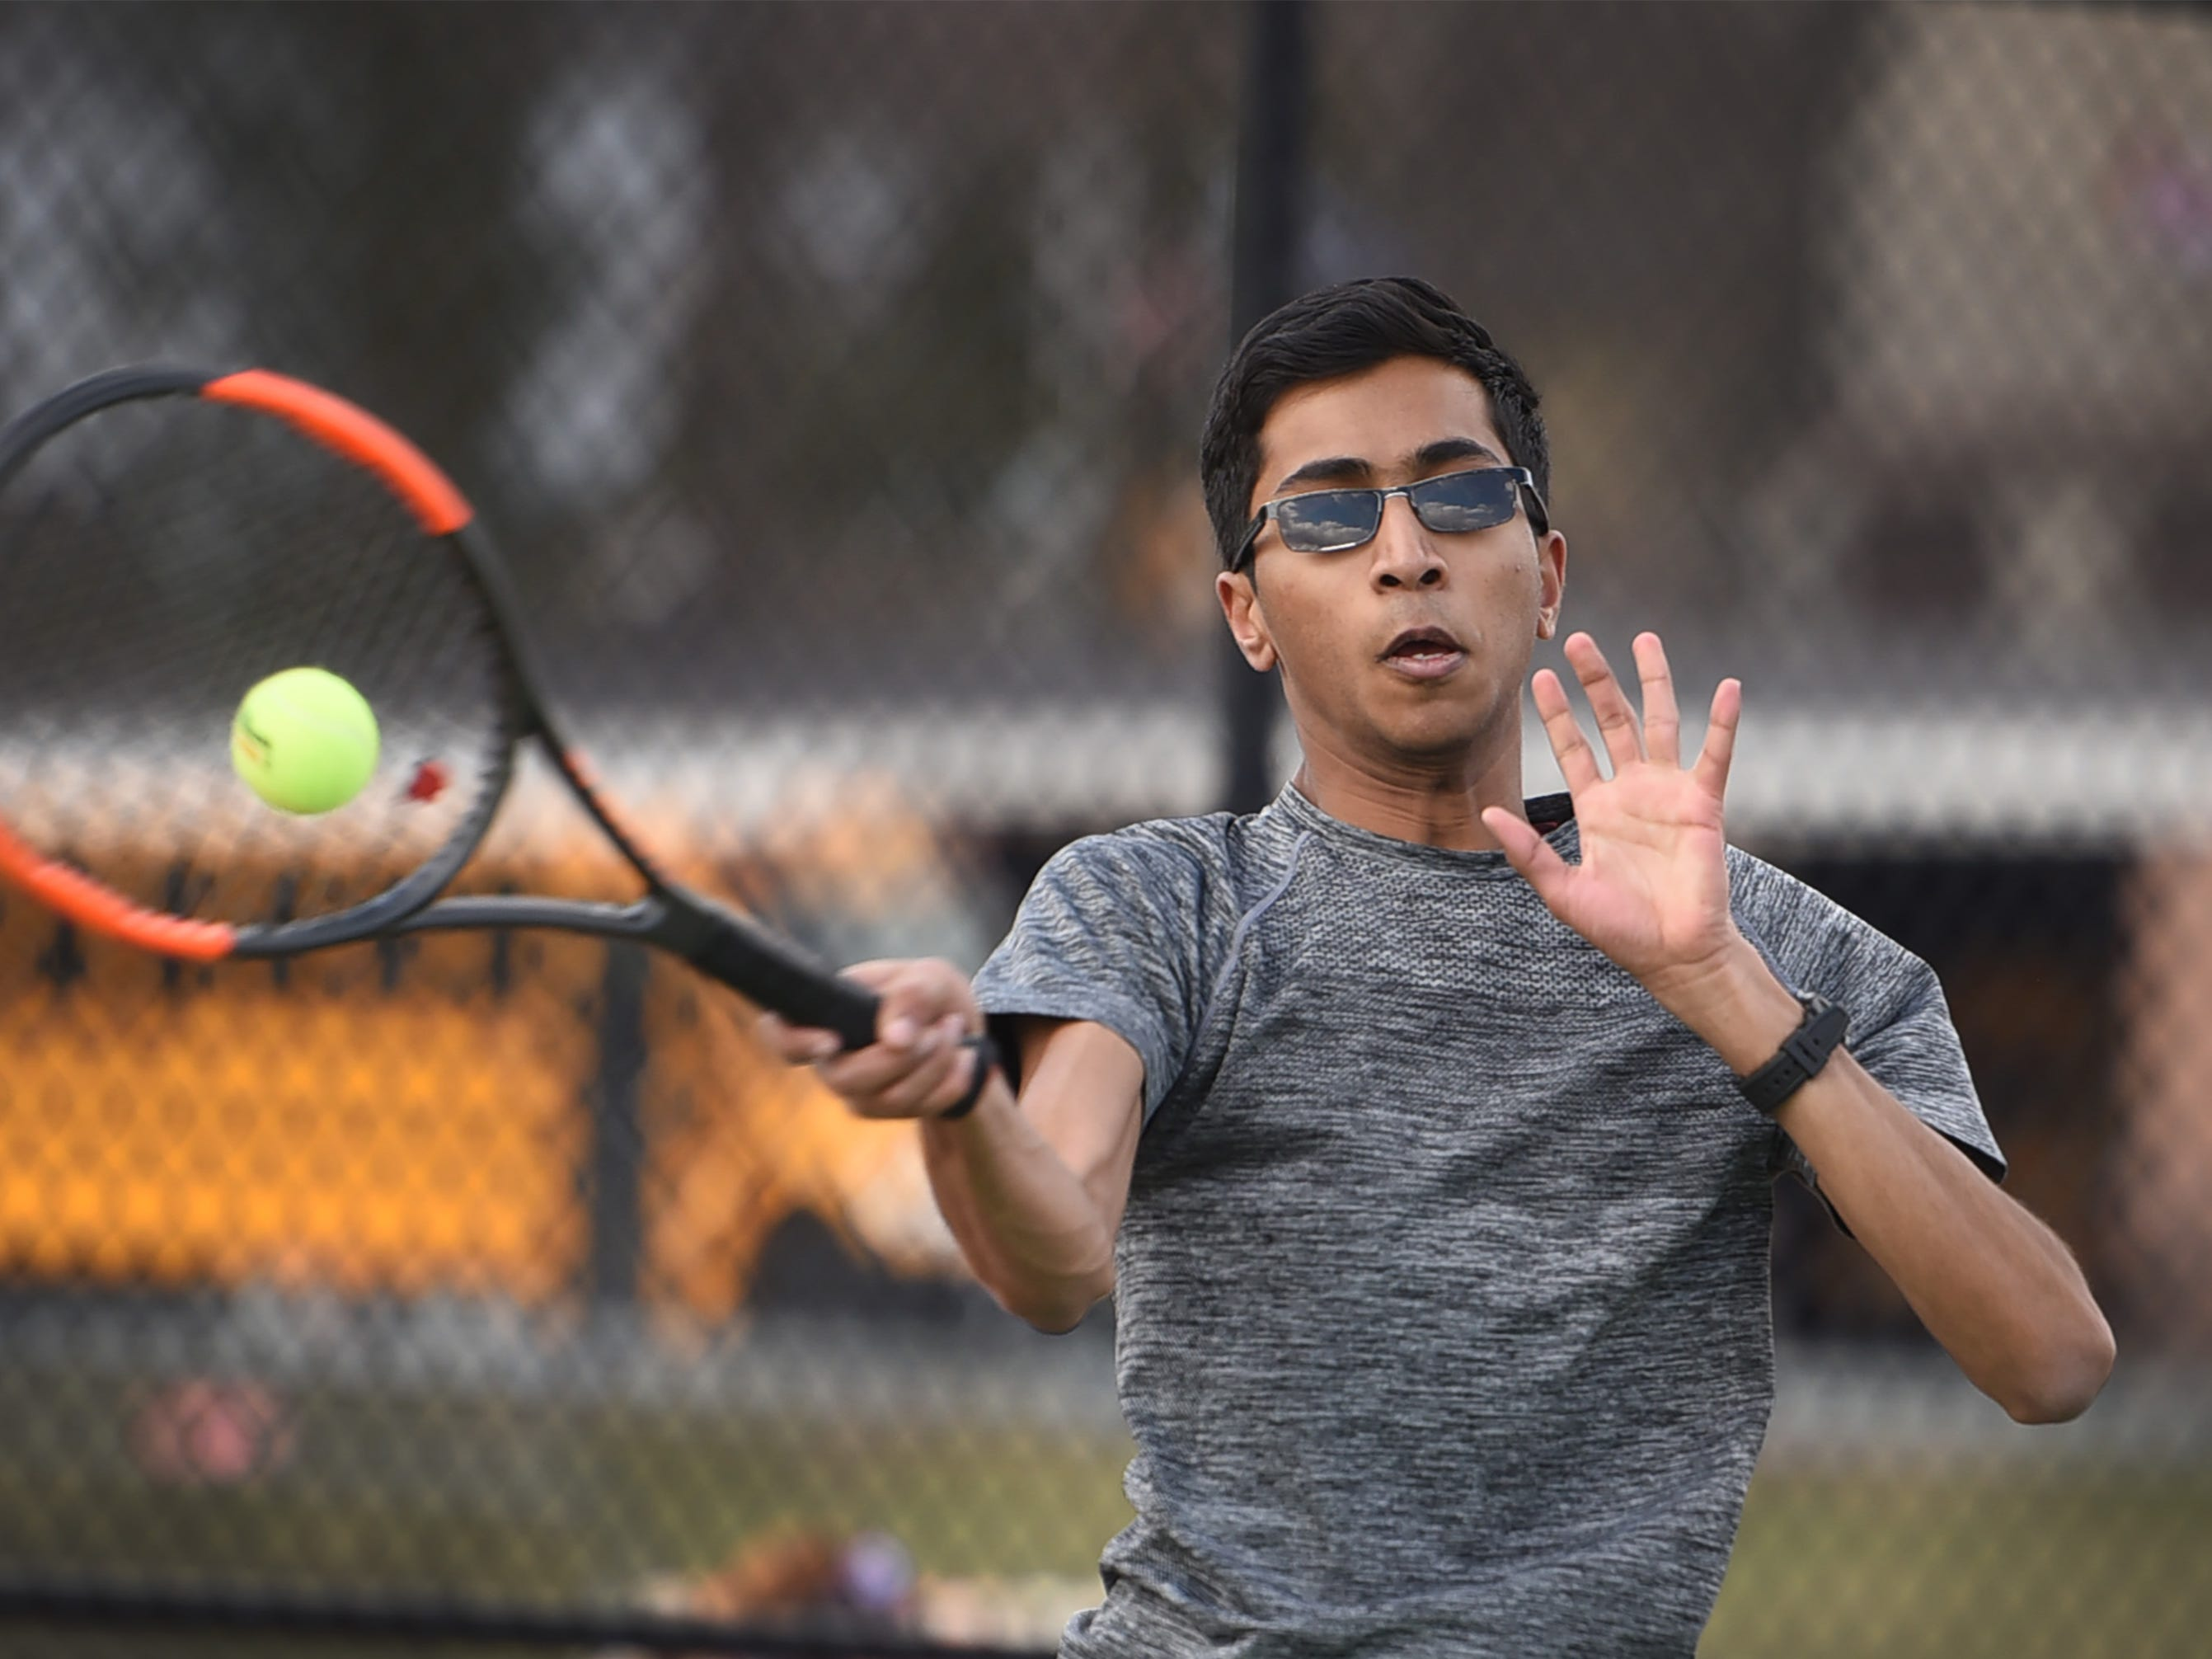 Morris Hills sophomore Charan Kanna of Montville plays during a practice, photographed at Morris Hills High School in Rockaway on 03/19/19. This is for the season preview on team diversity.